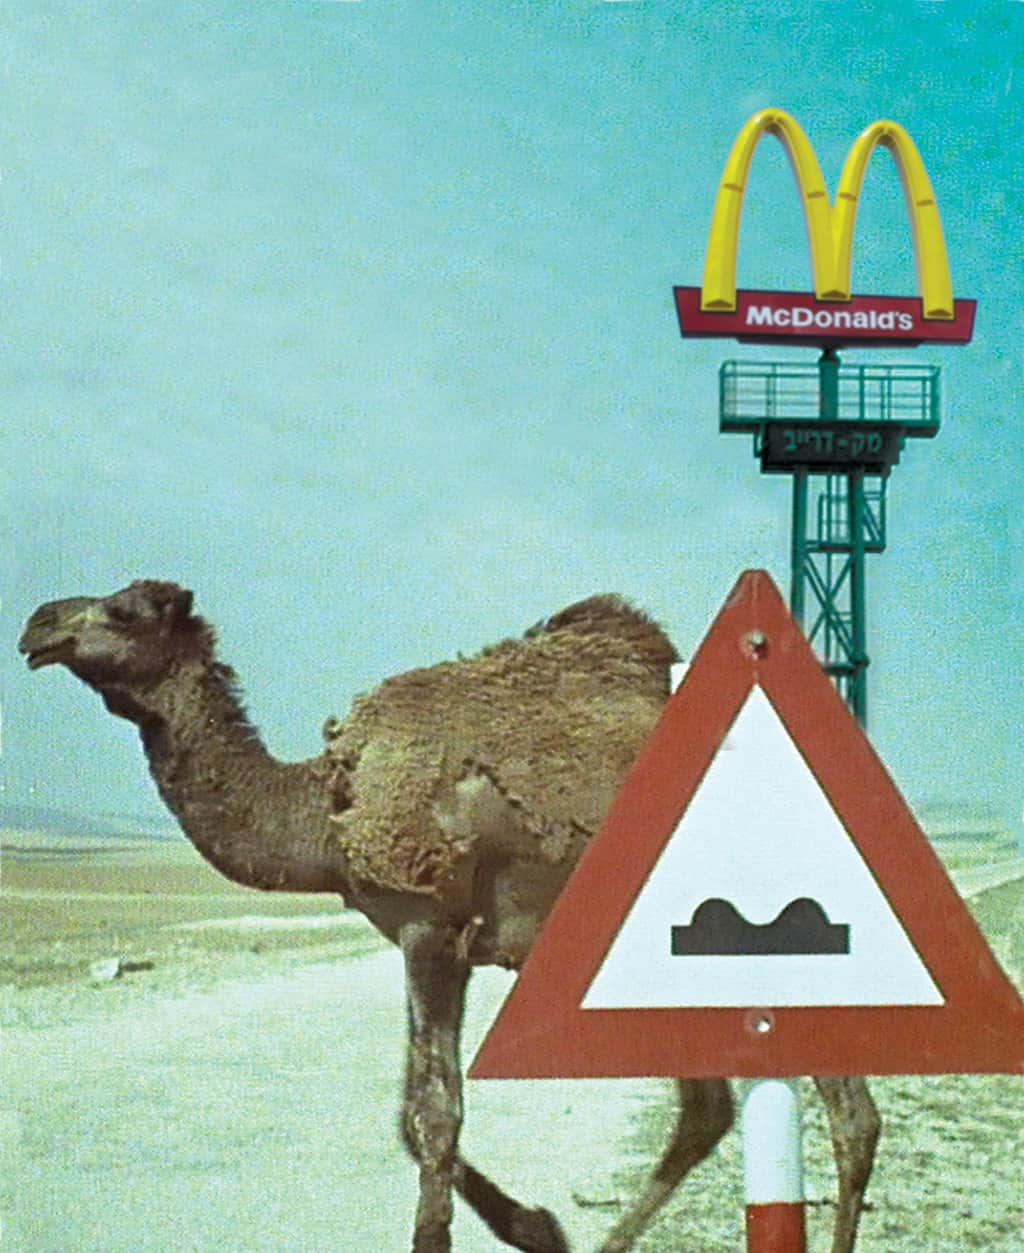 Description of a Struggle - camel crossing sign, camel and McDonald's tower in background